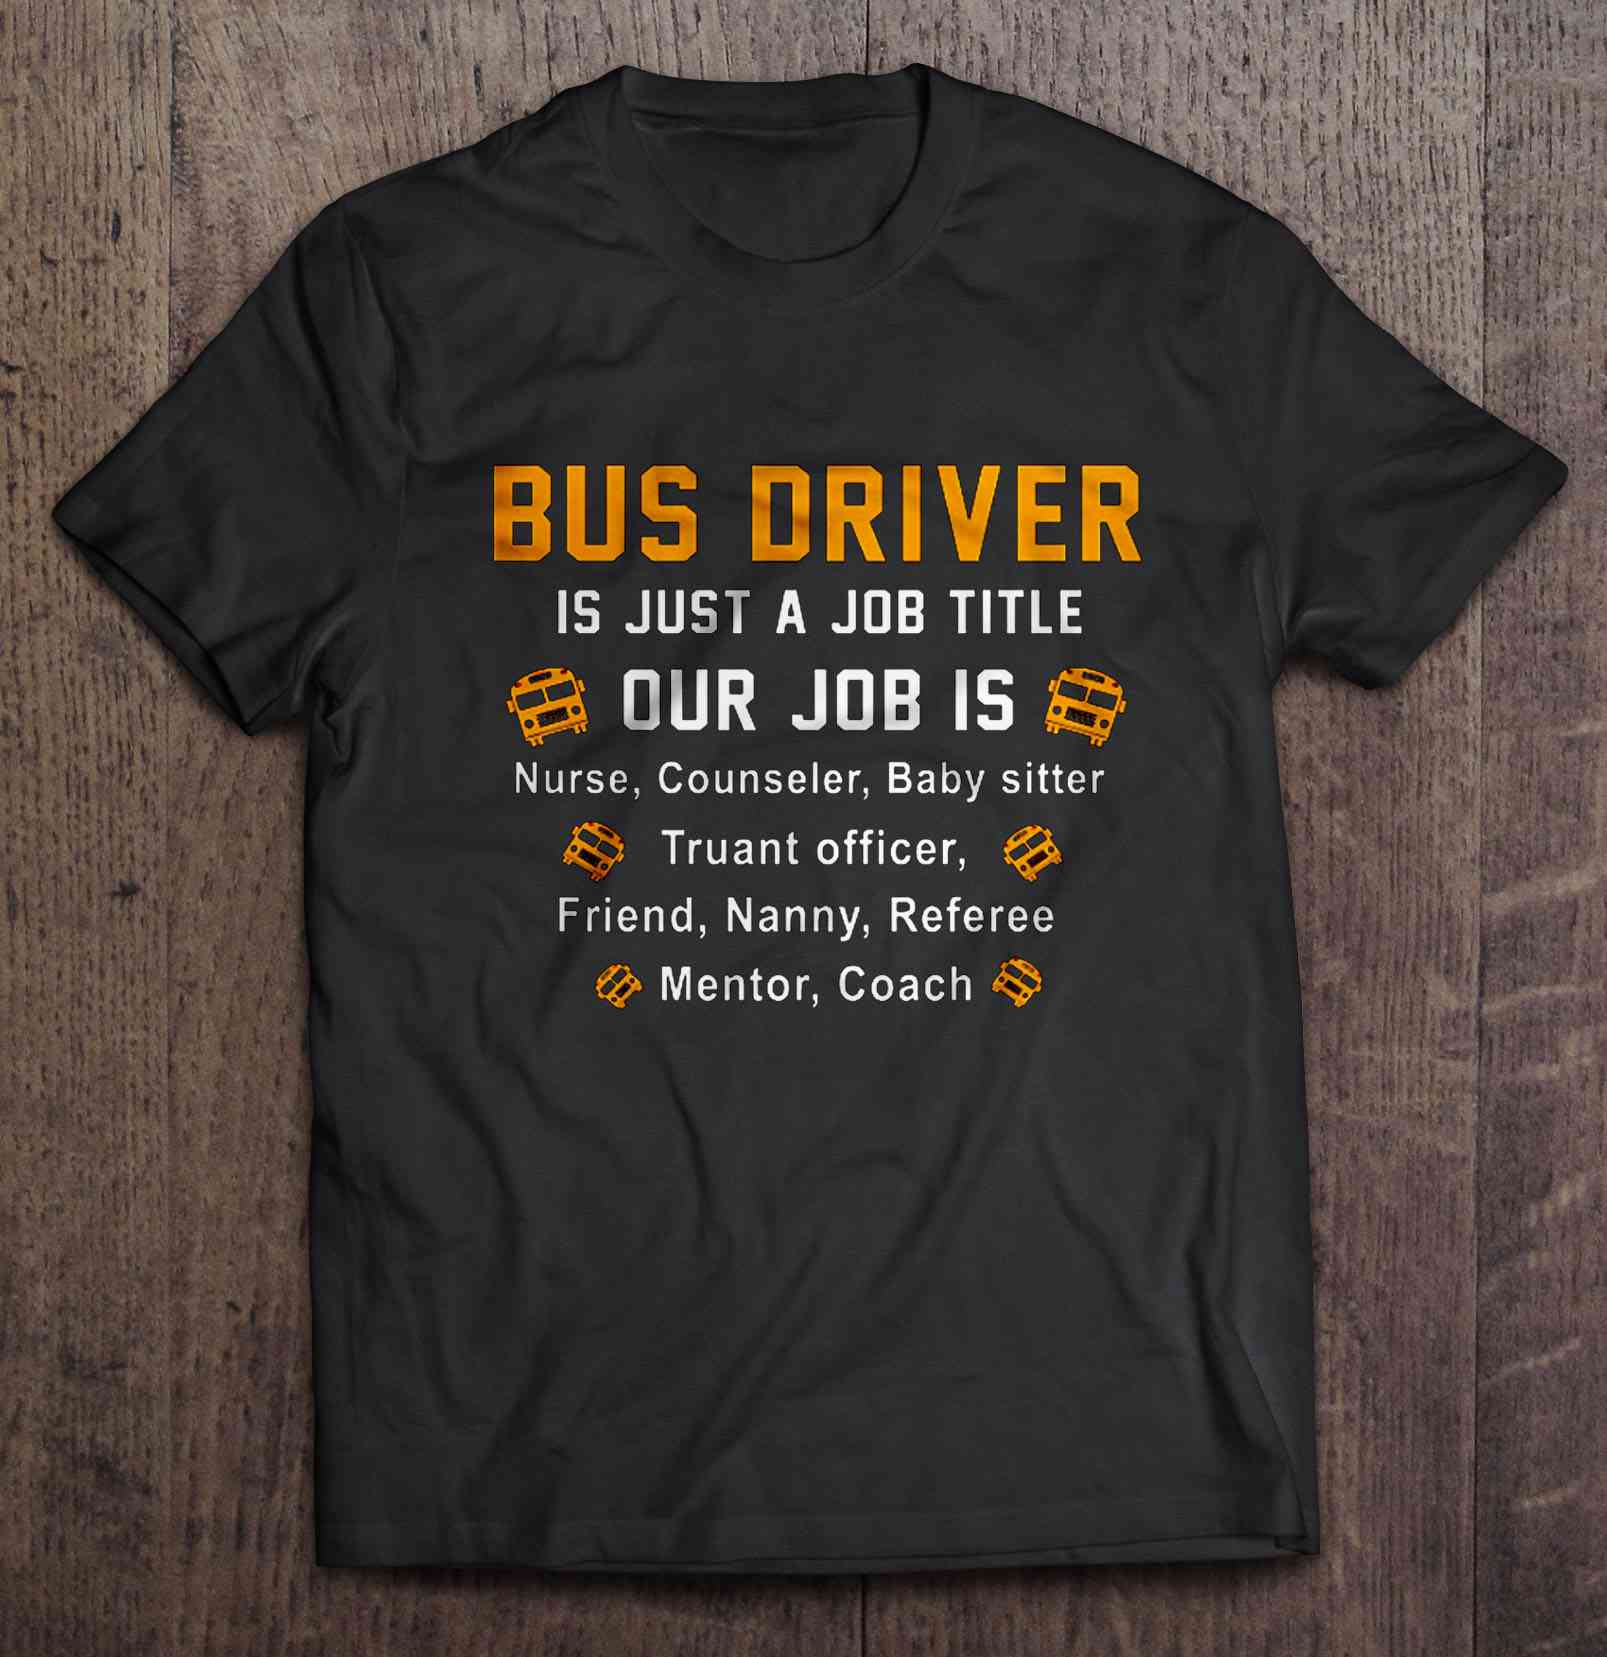 Bus Driver Is Just A Job Title Our Job Is T-shirt